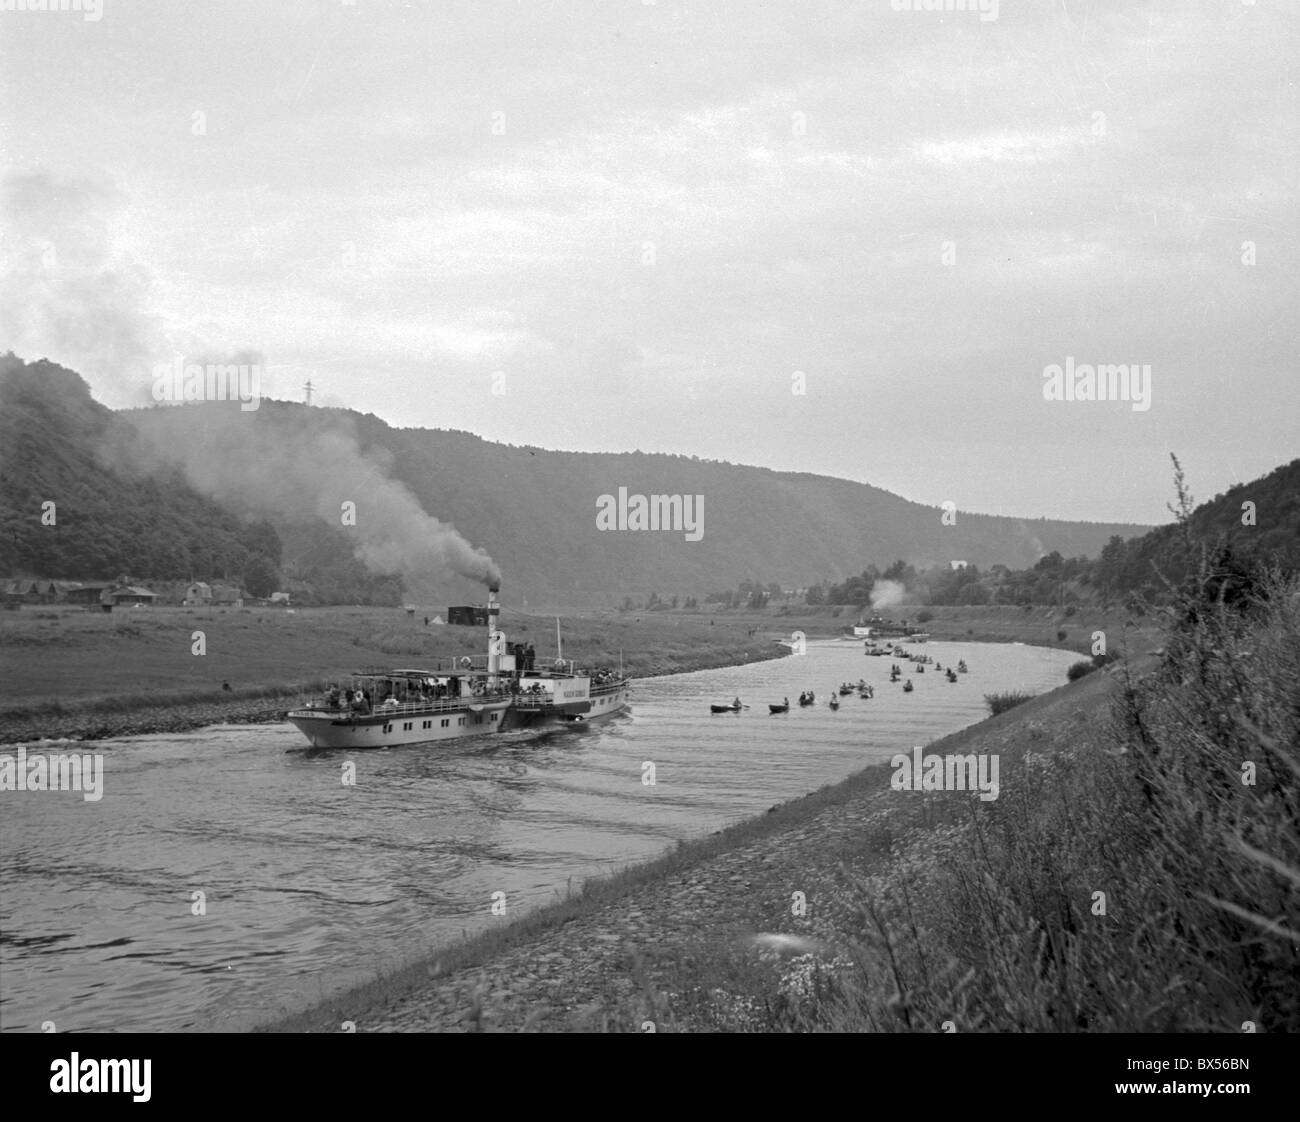 Steamship and canoes on the Vltava river. CTK Photo/Jan Tachezy - Stock Image